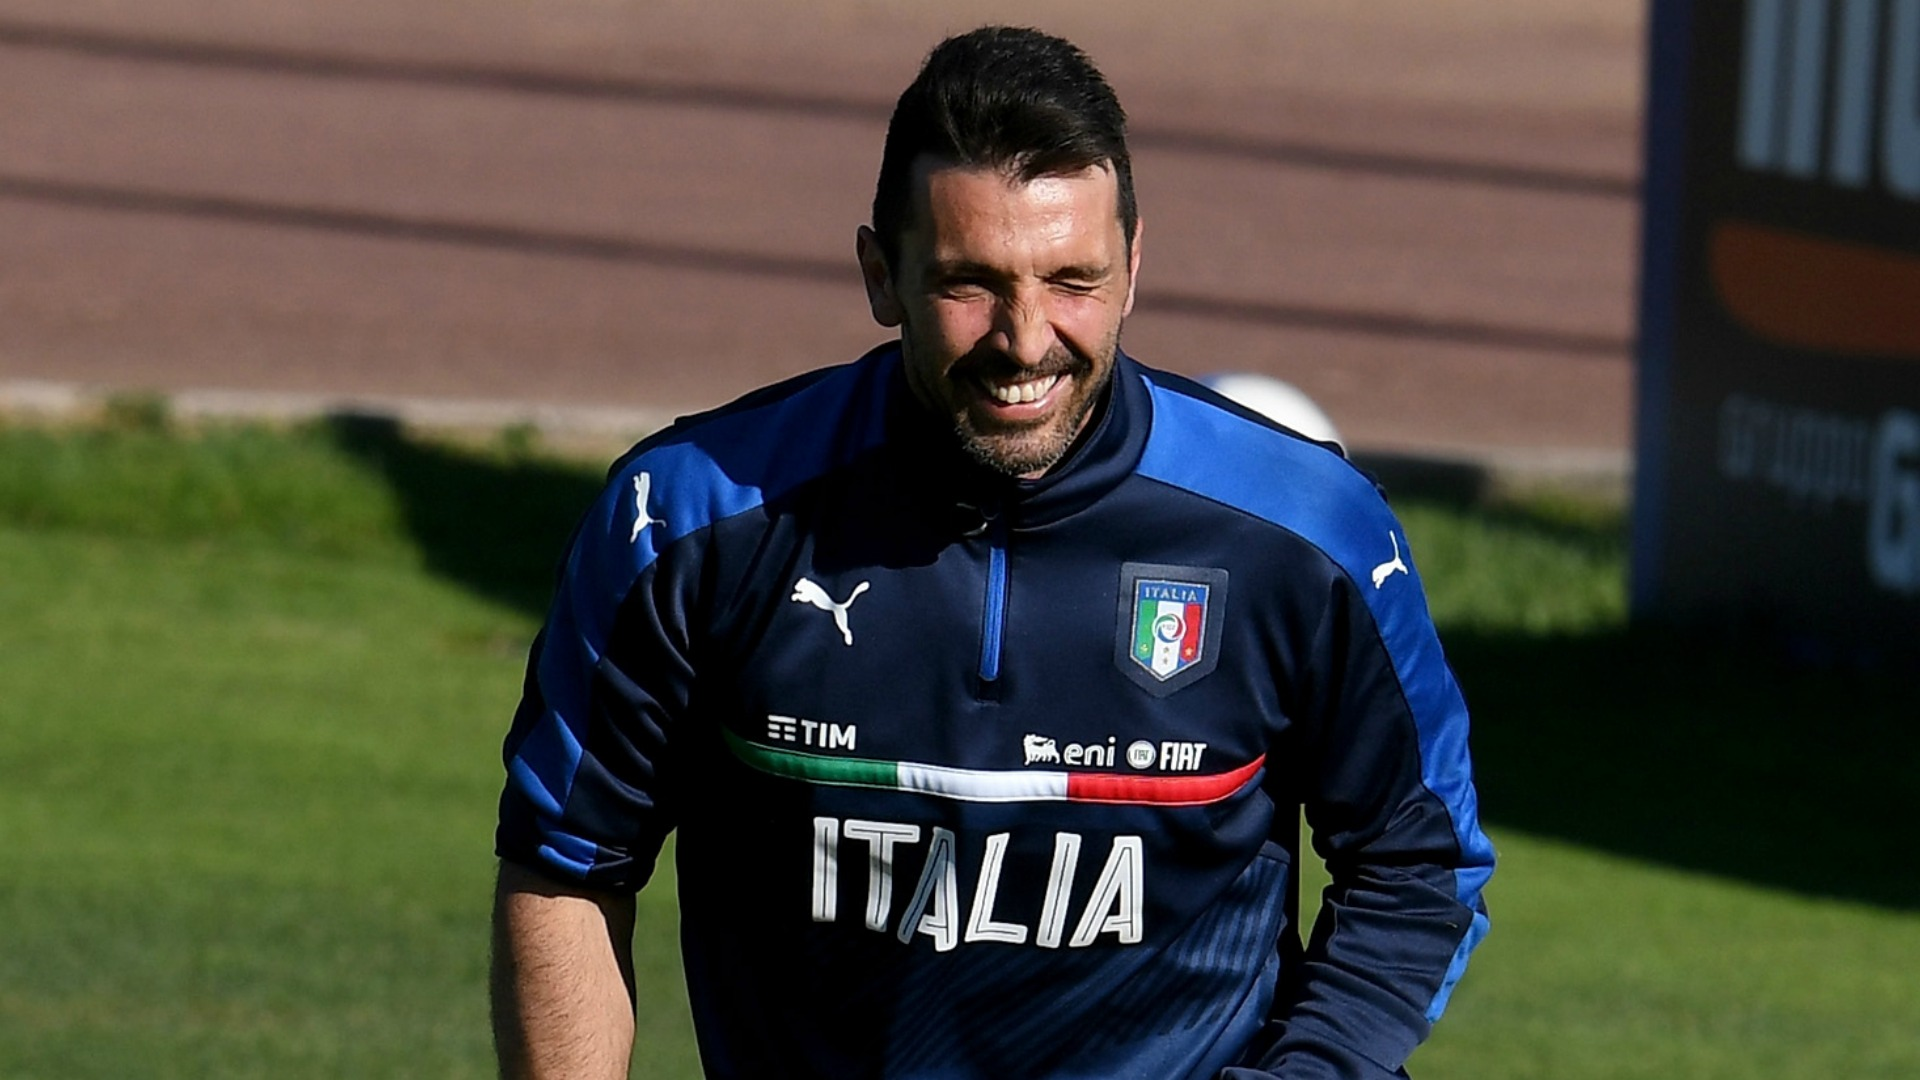 Gianluigi Buffon Italy